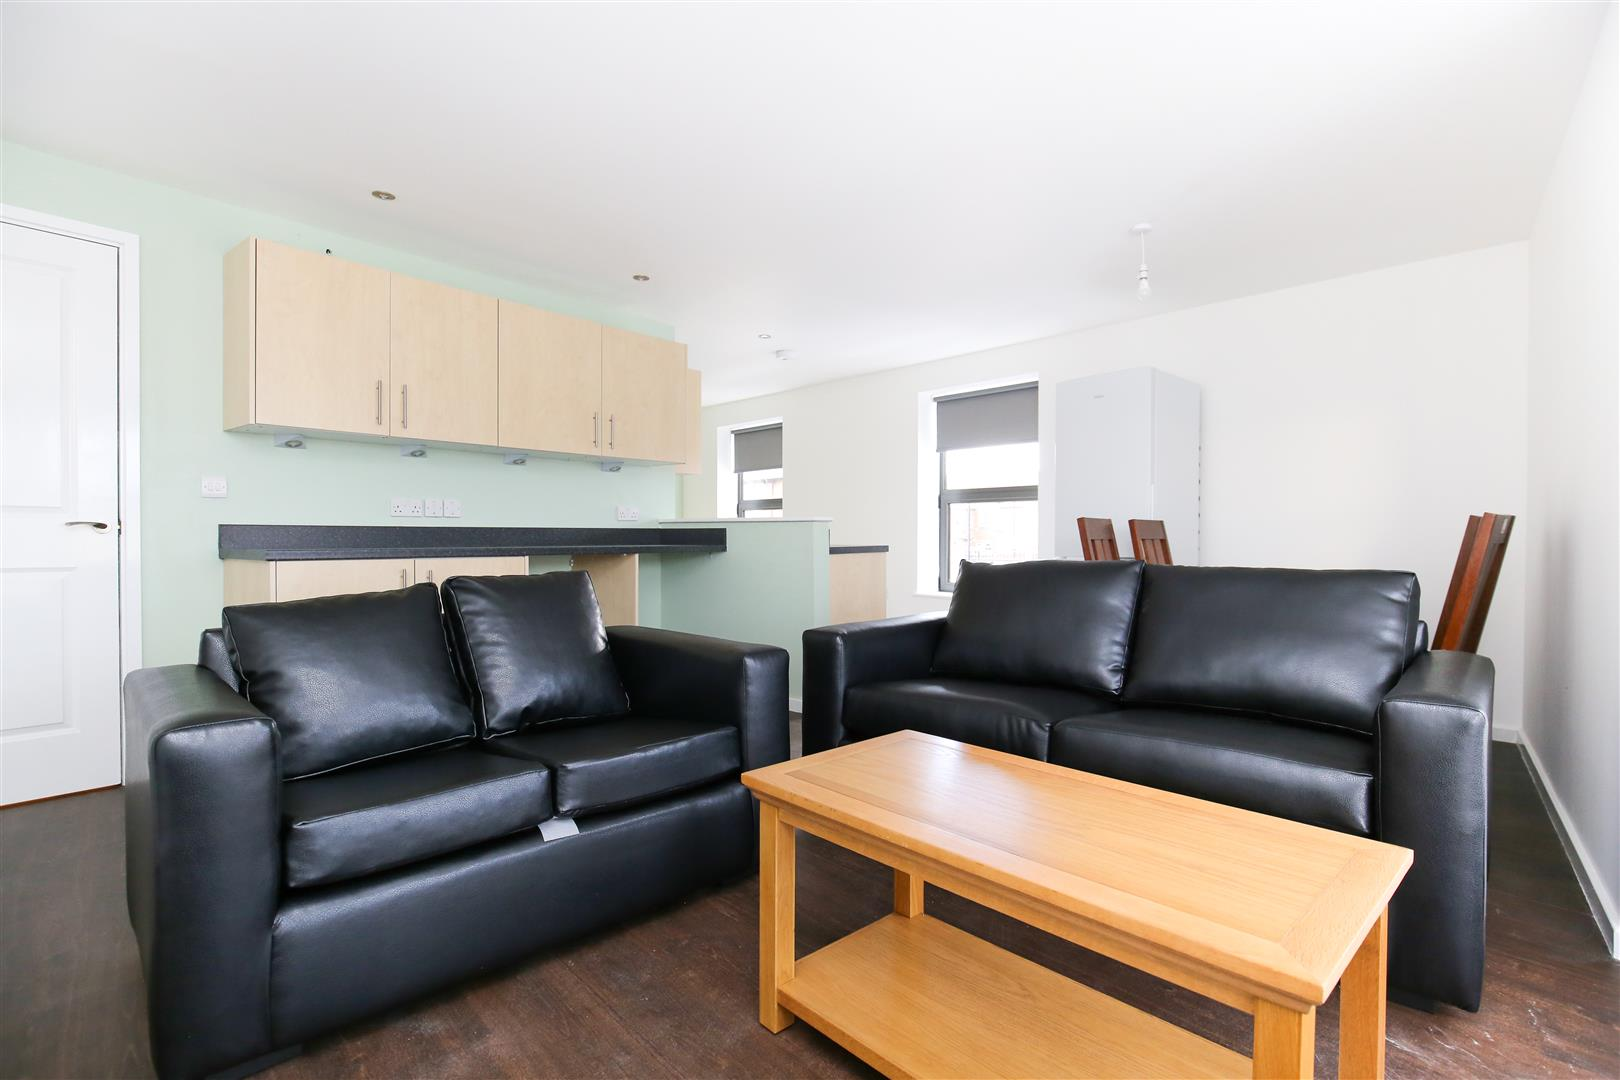 3 bed apartment to rent in Newcastle Upon Tyne, NE6 5BL, NE6